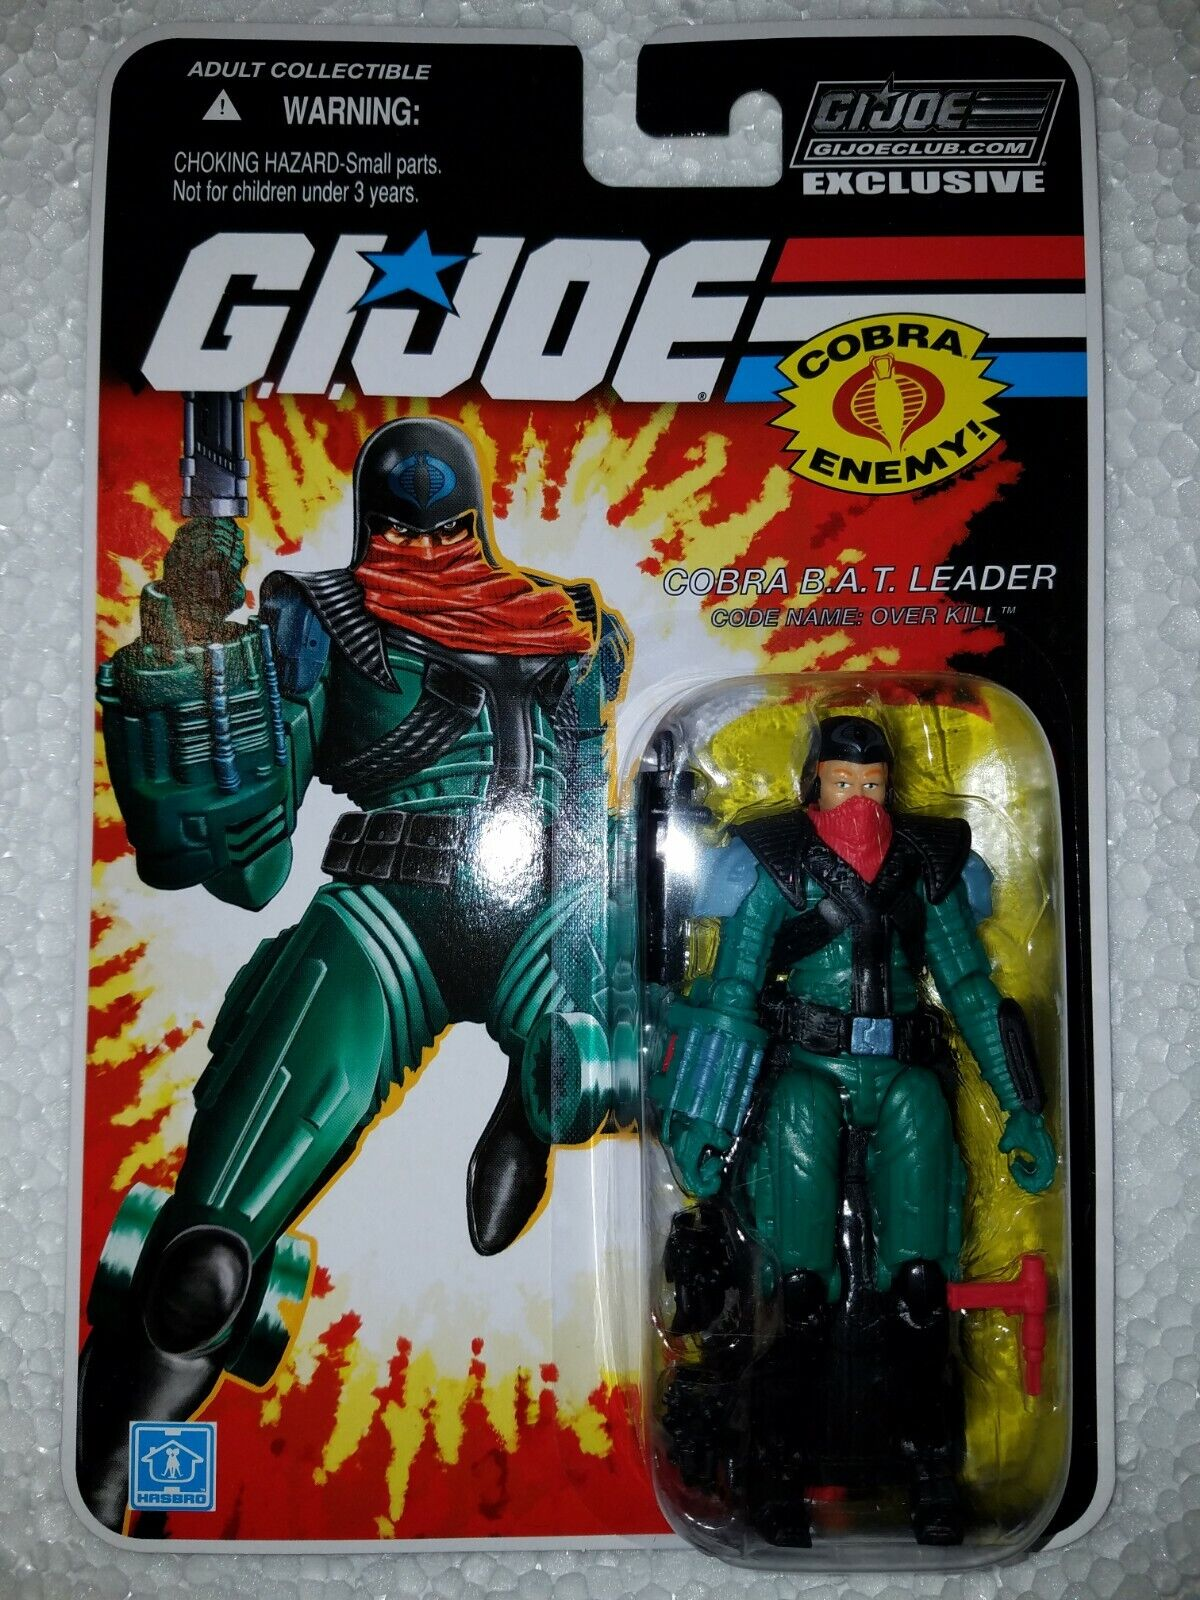 G.I.JOE EXCLUSIVE CLUB FSS 8.0  OVER KILL - COBRA B.A.T. LEADER